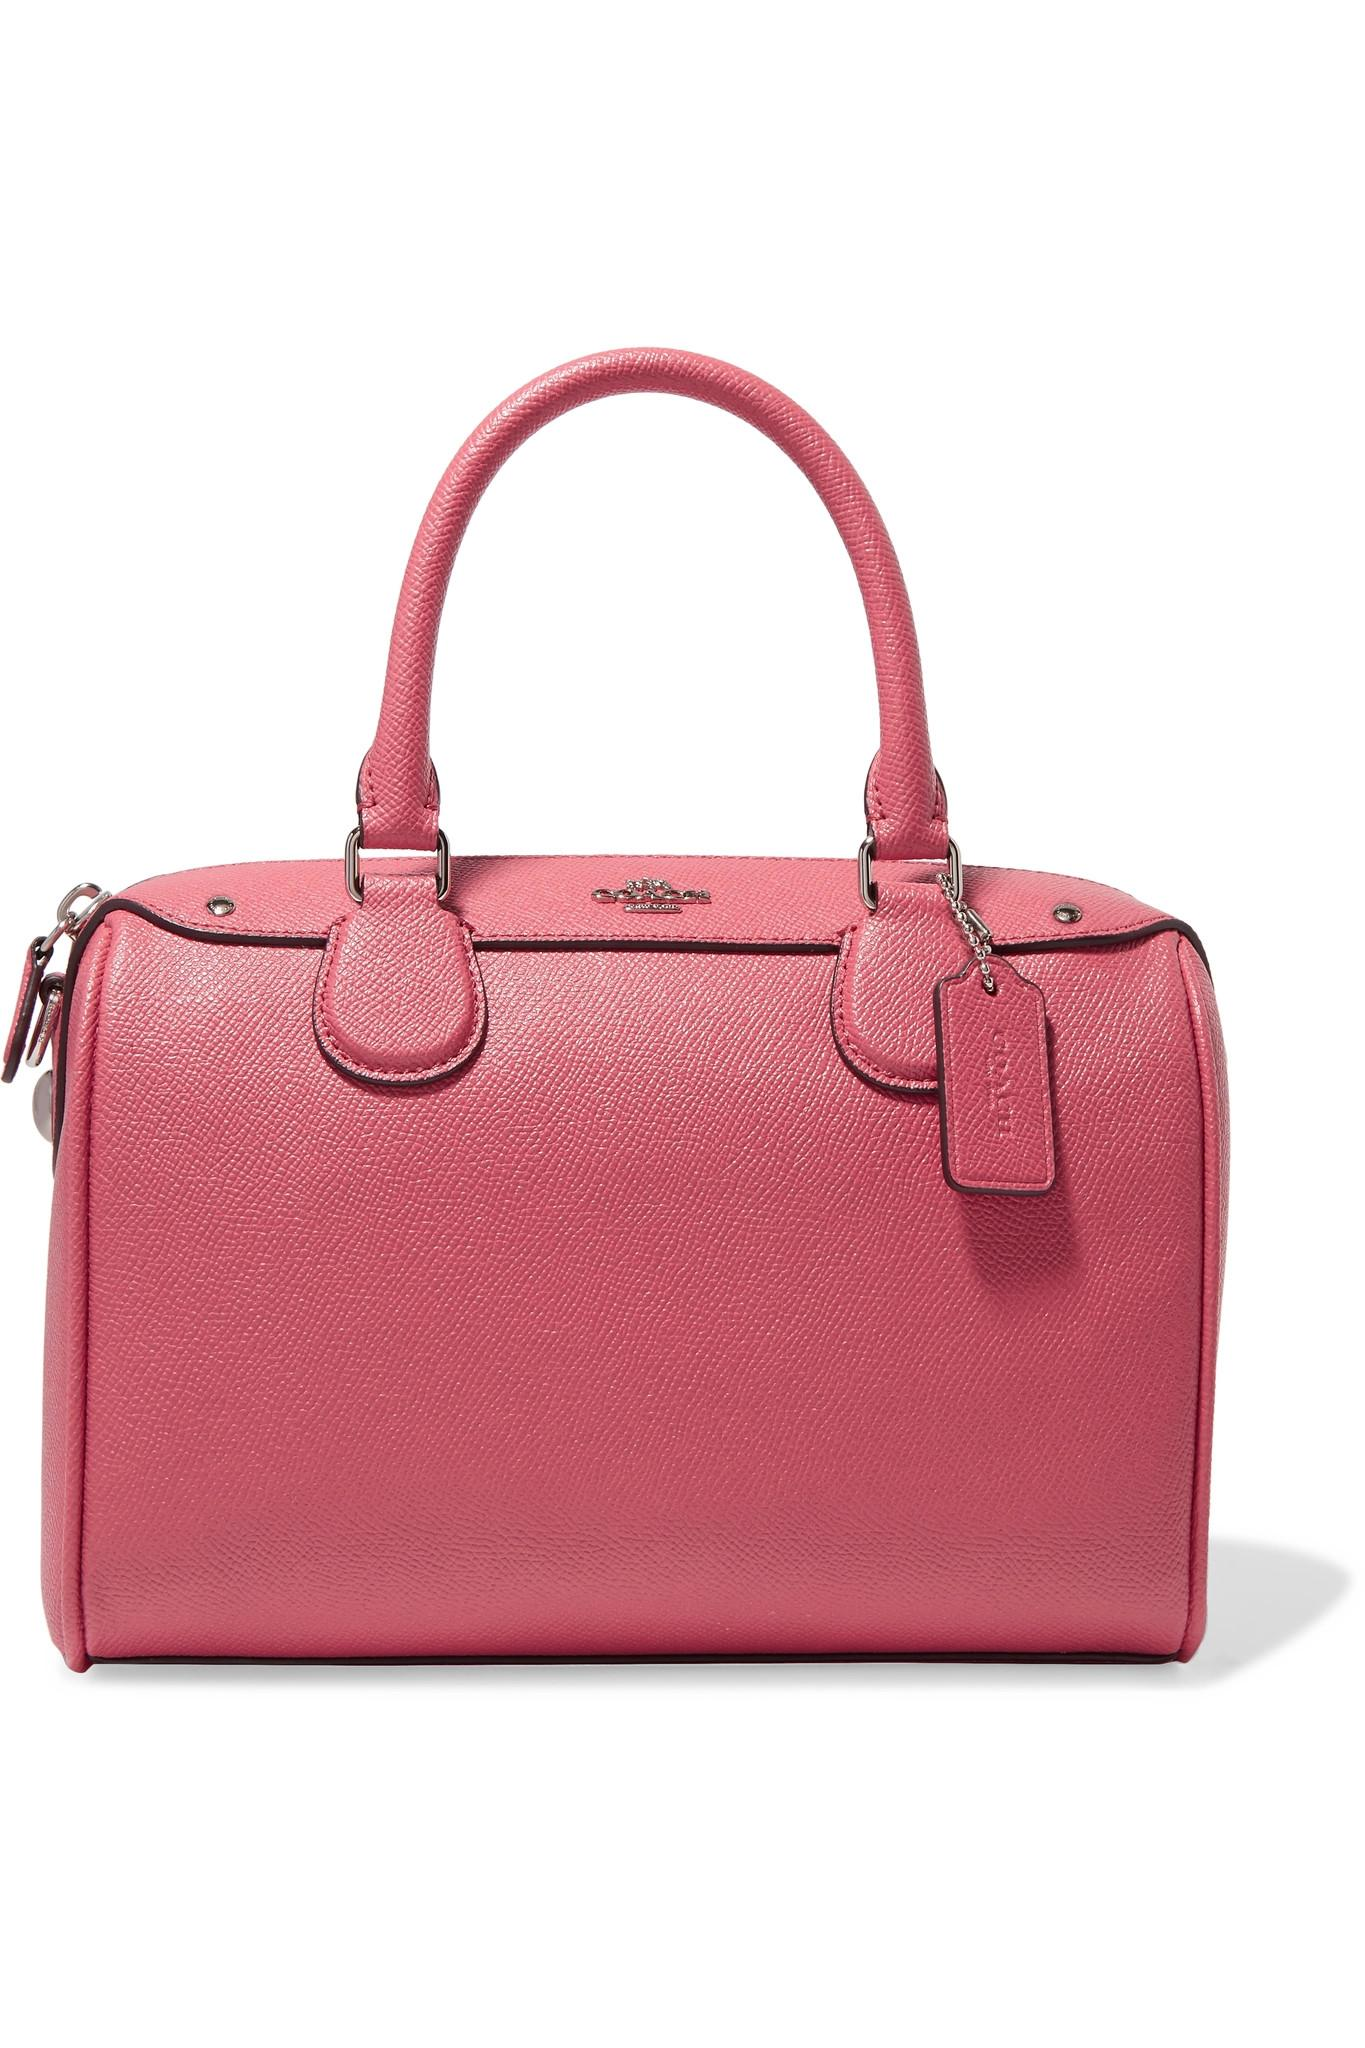 Coach Mini Bennett Textured Leather Tote In Pink Lyst